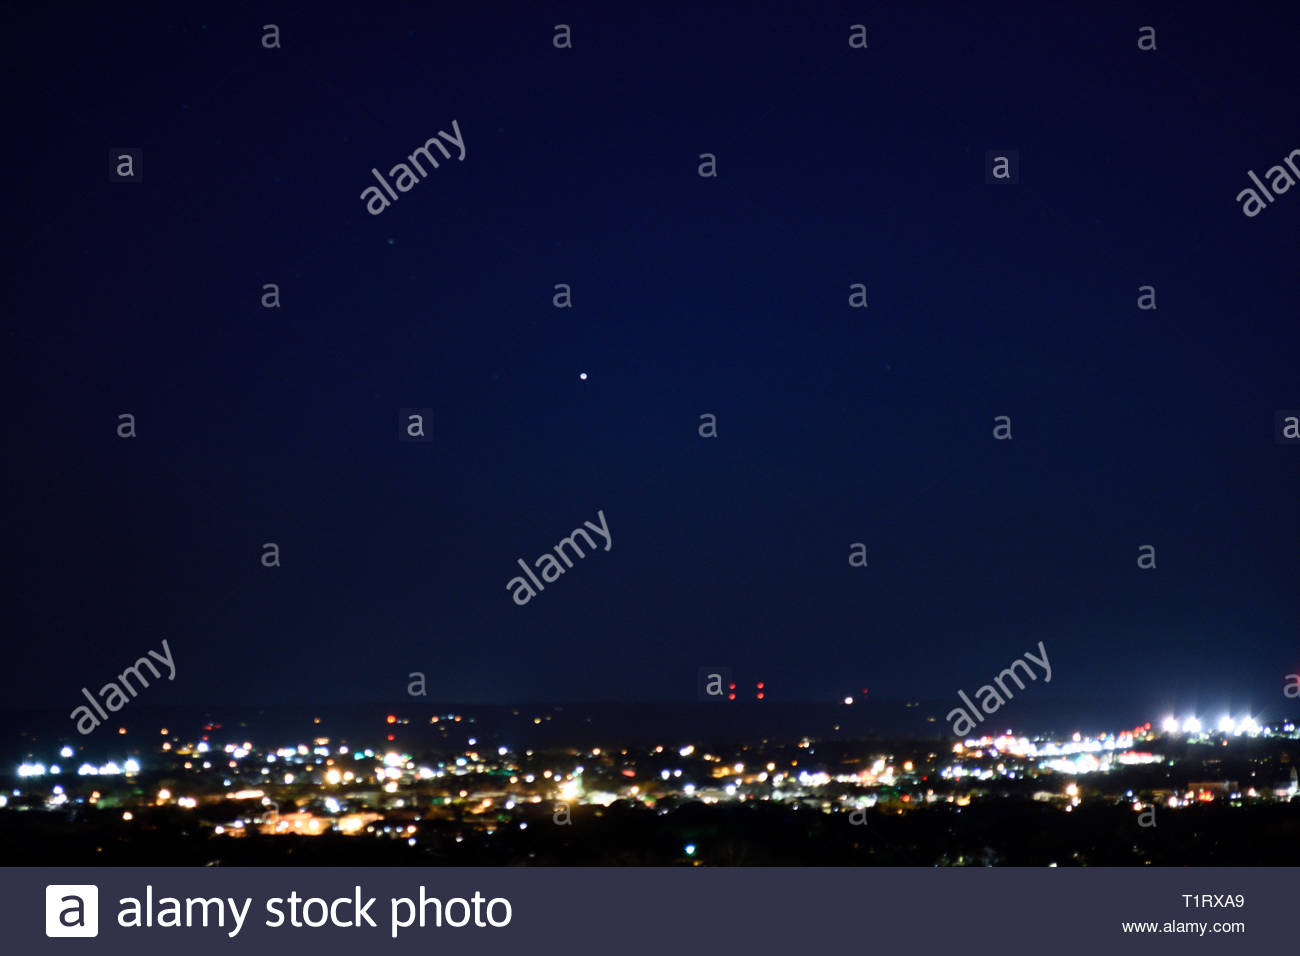 Canopus Star over Texas. Canopus in Carina The Keel of the Argo Navis Constellation. Bright Star Canopis Alpha Carinae. Canopus over Fredericksburg TX - Stock Image